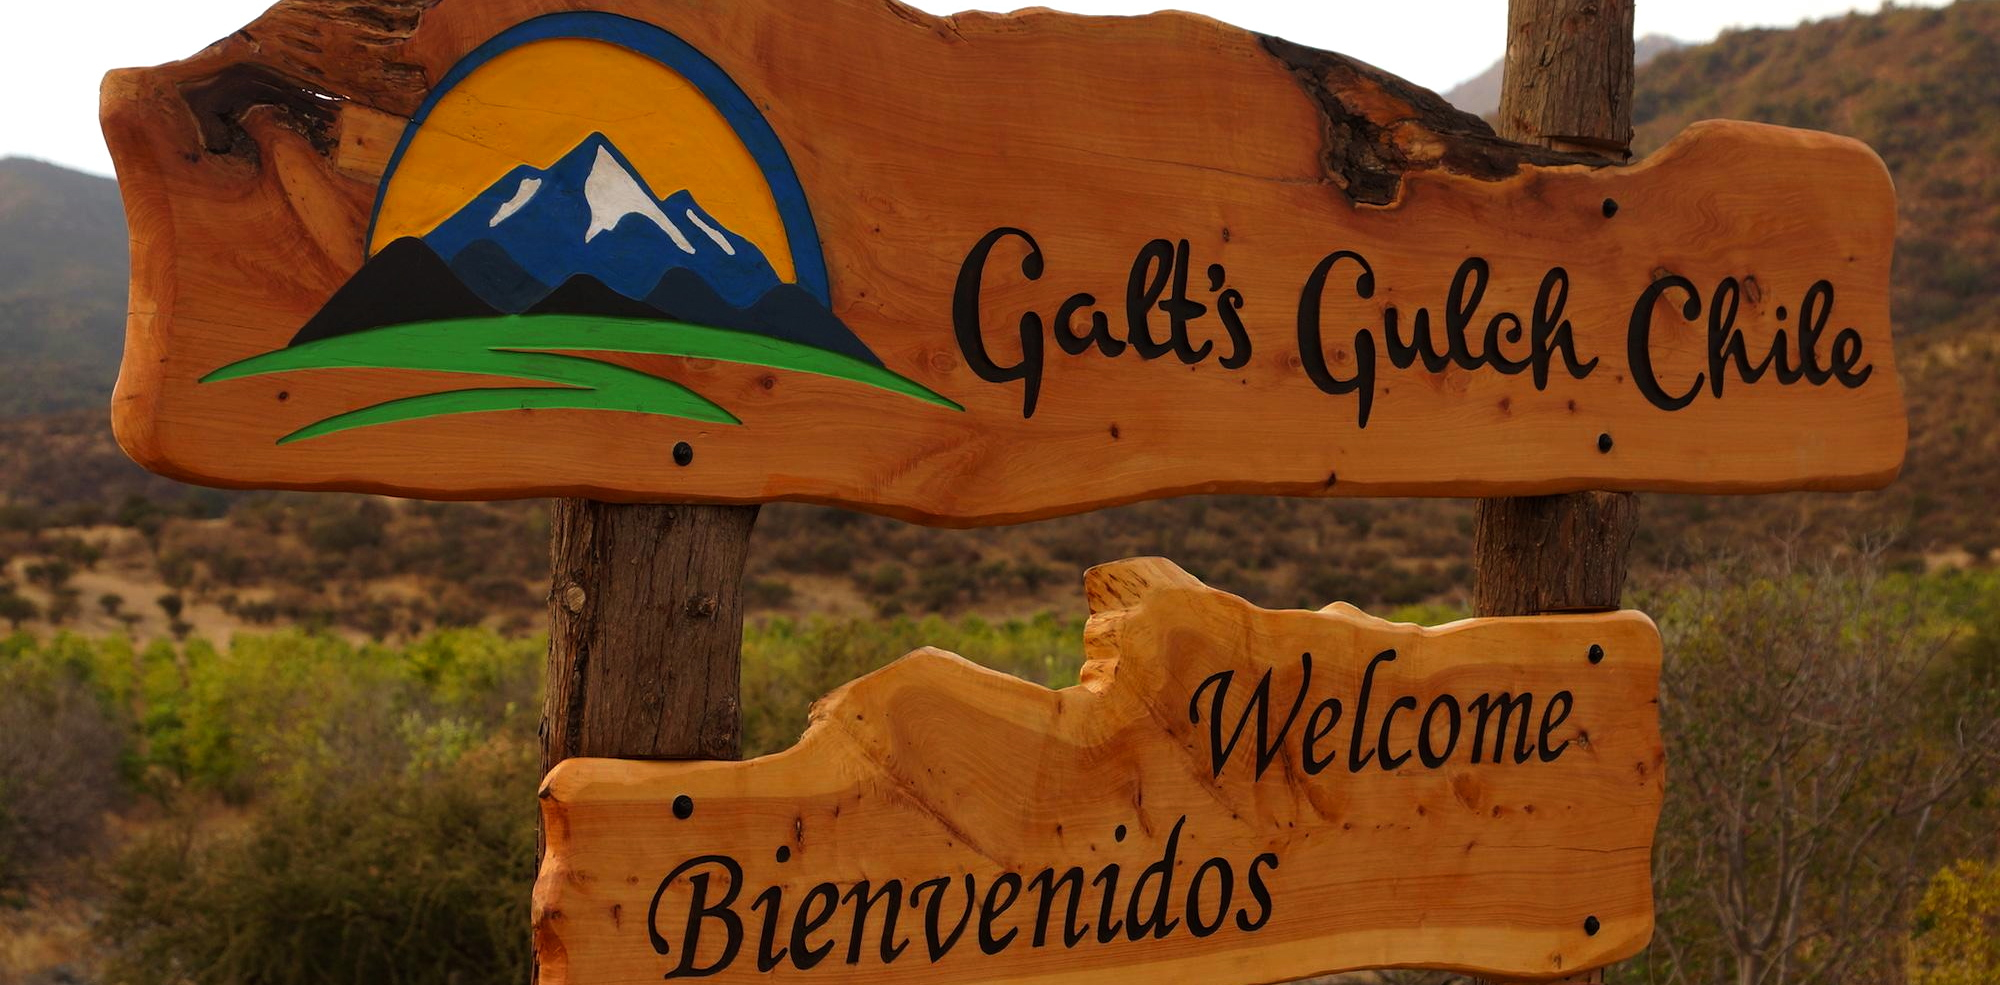 Galt's Gult Chile, a libertarian development project inspired by Ayn Rand's Atlas Shrugged. (Galt's Gult Chile)